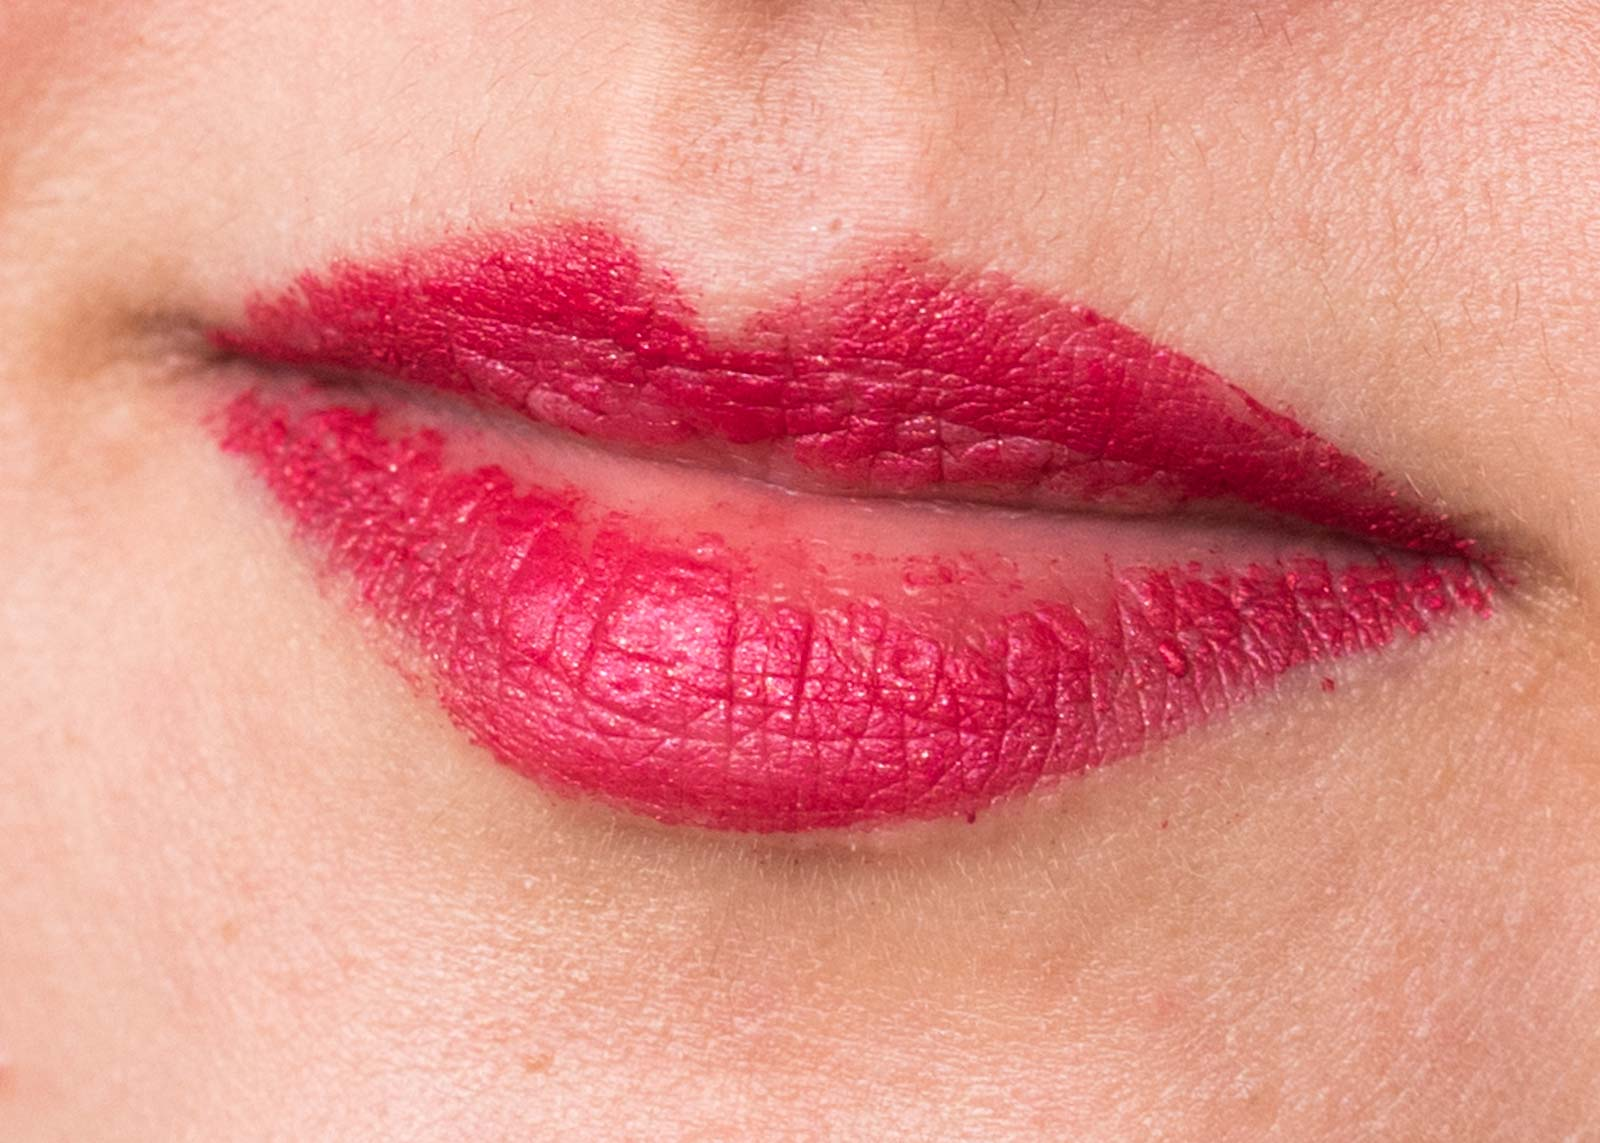 how to get your natural lip color back